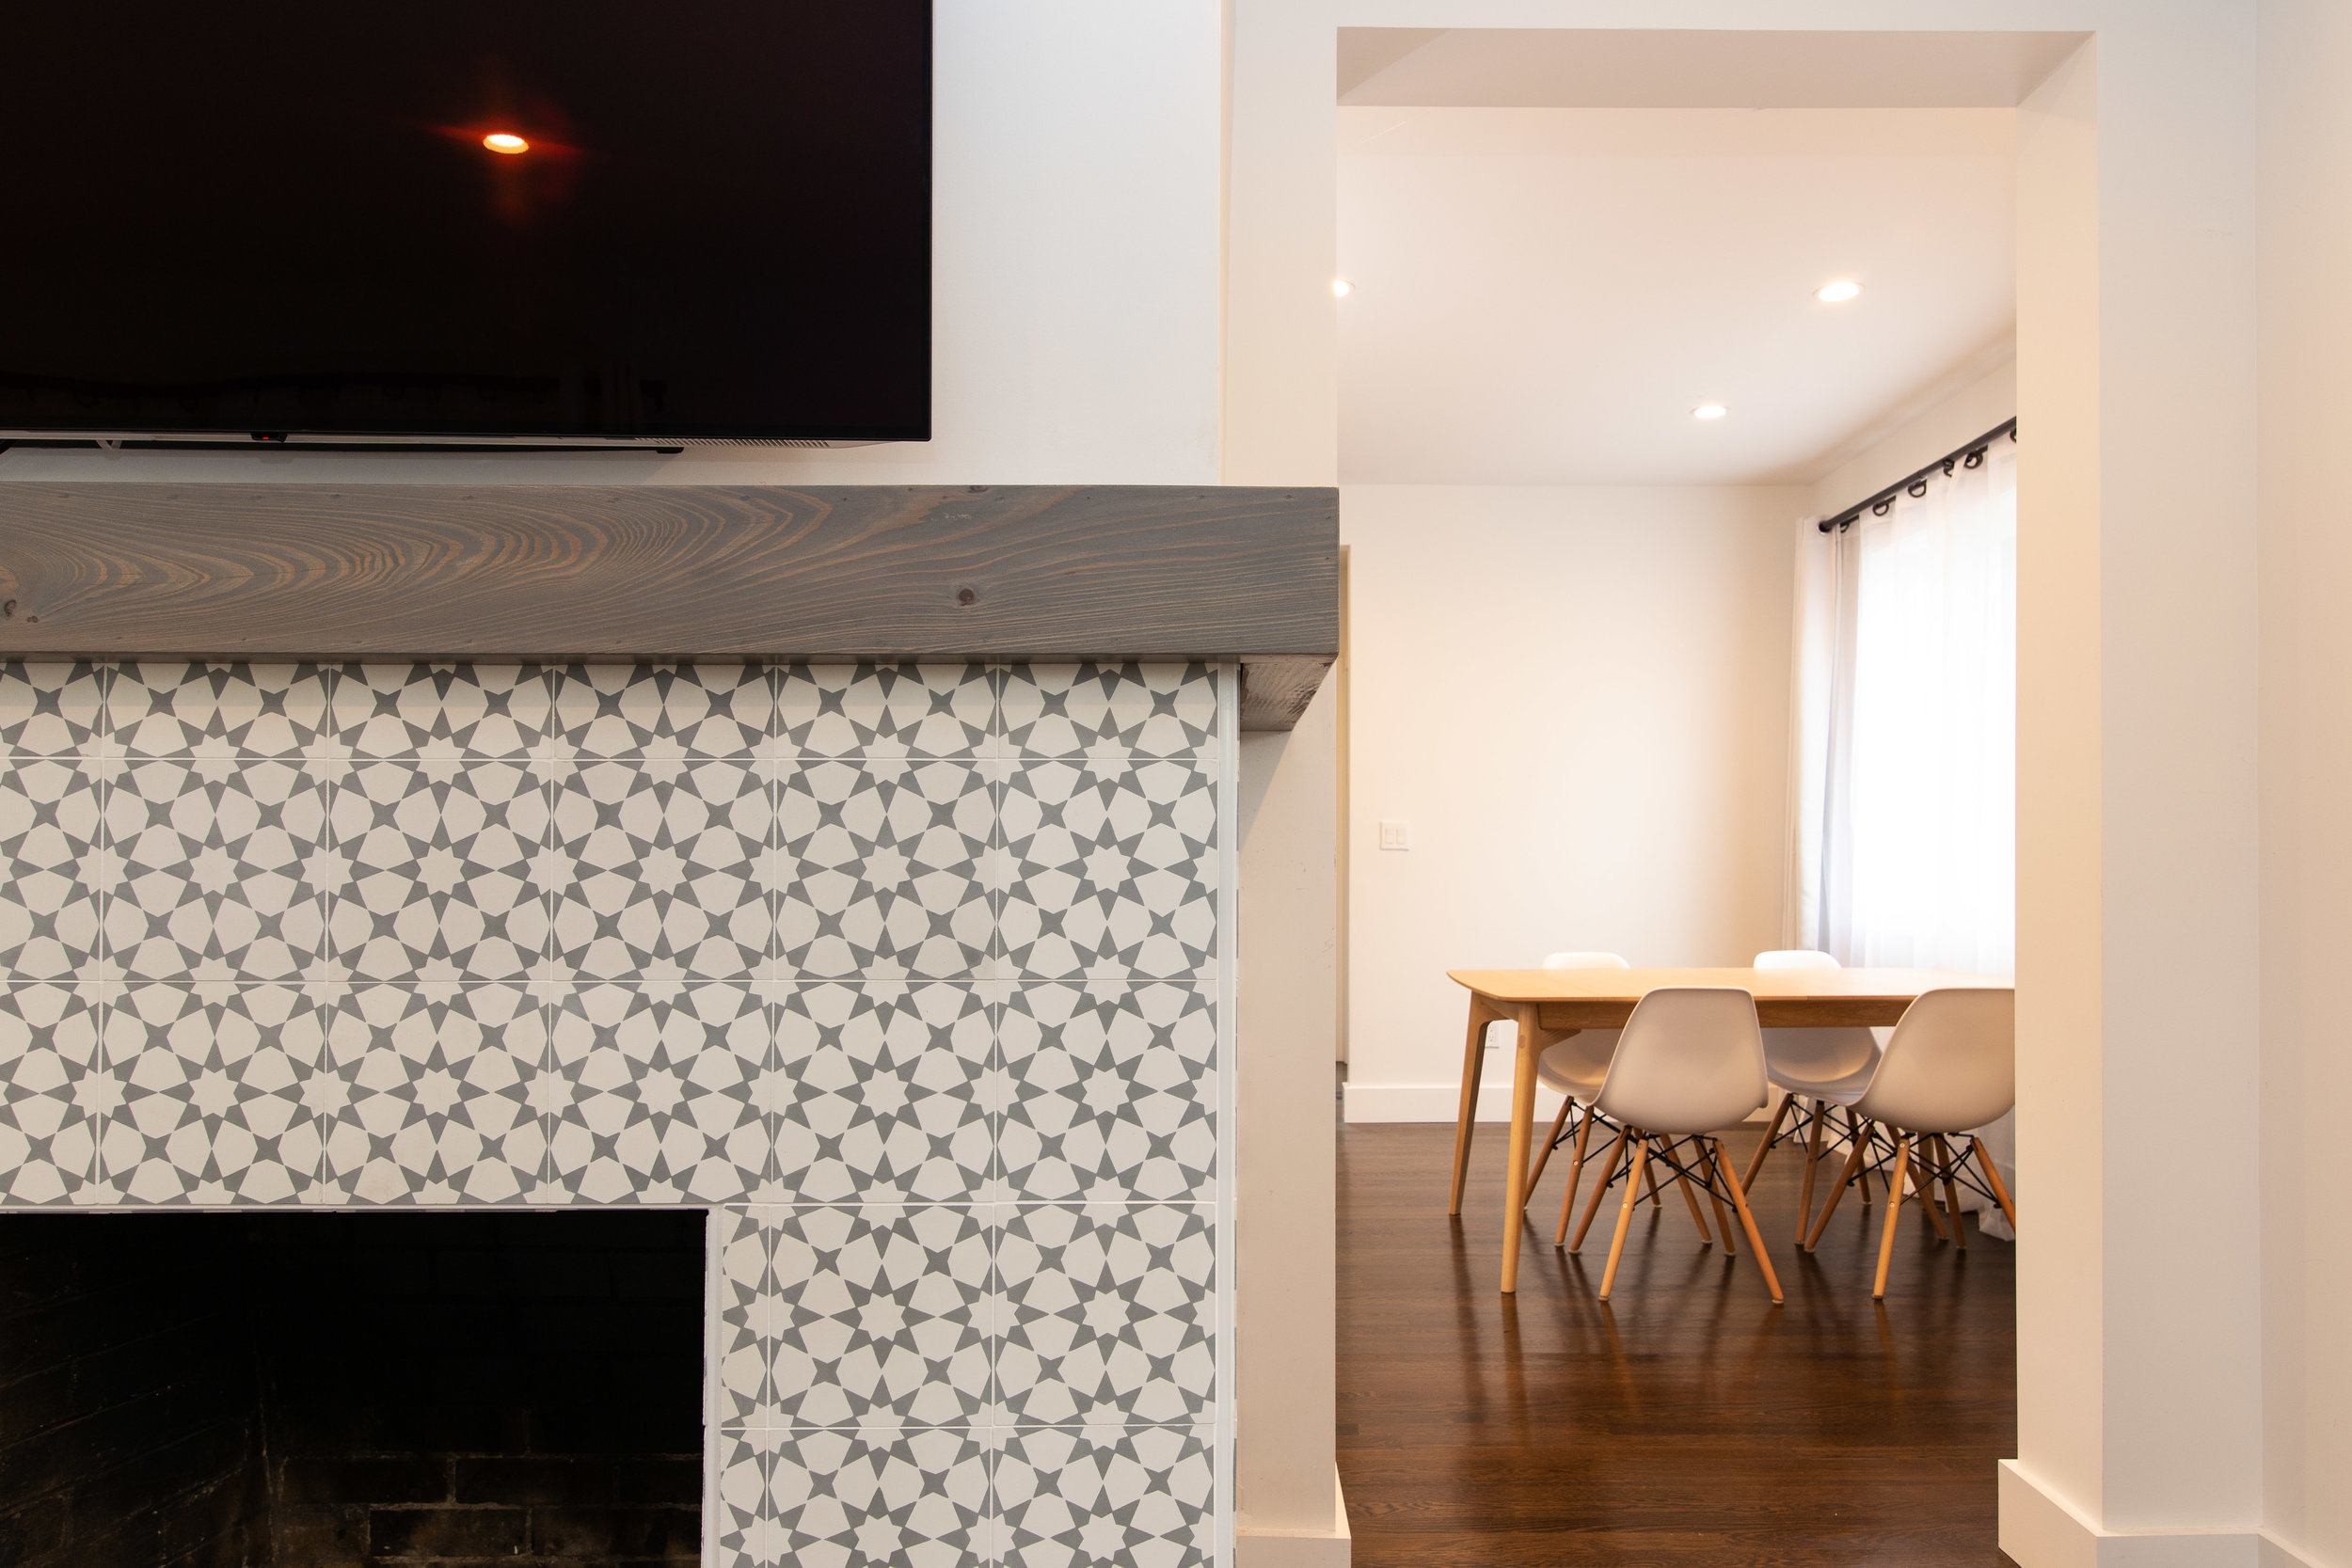 Ivy_Fireplace 02.jpg